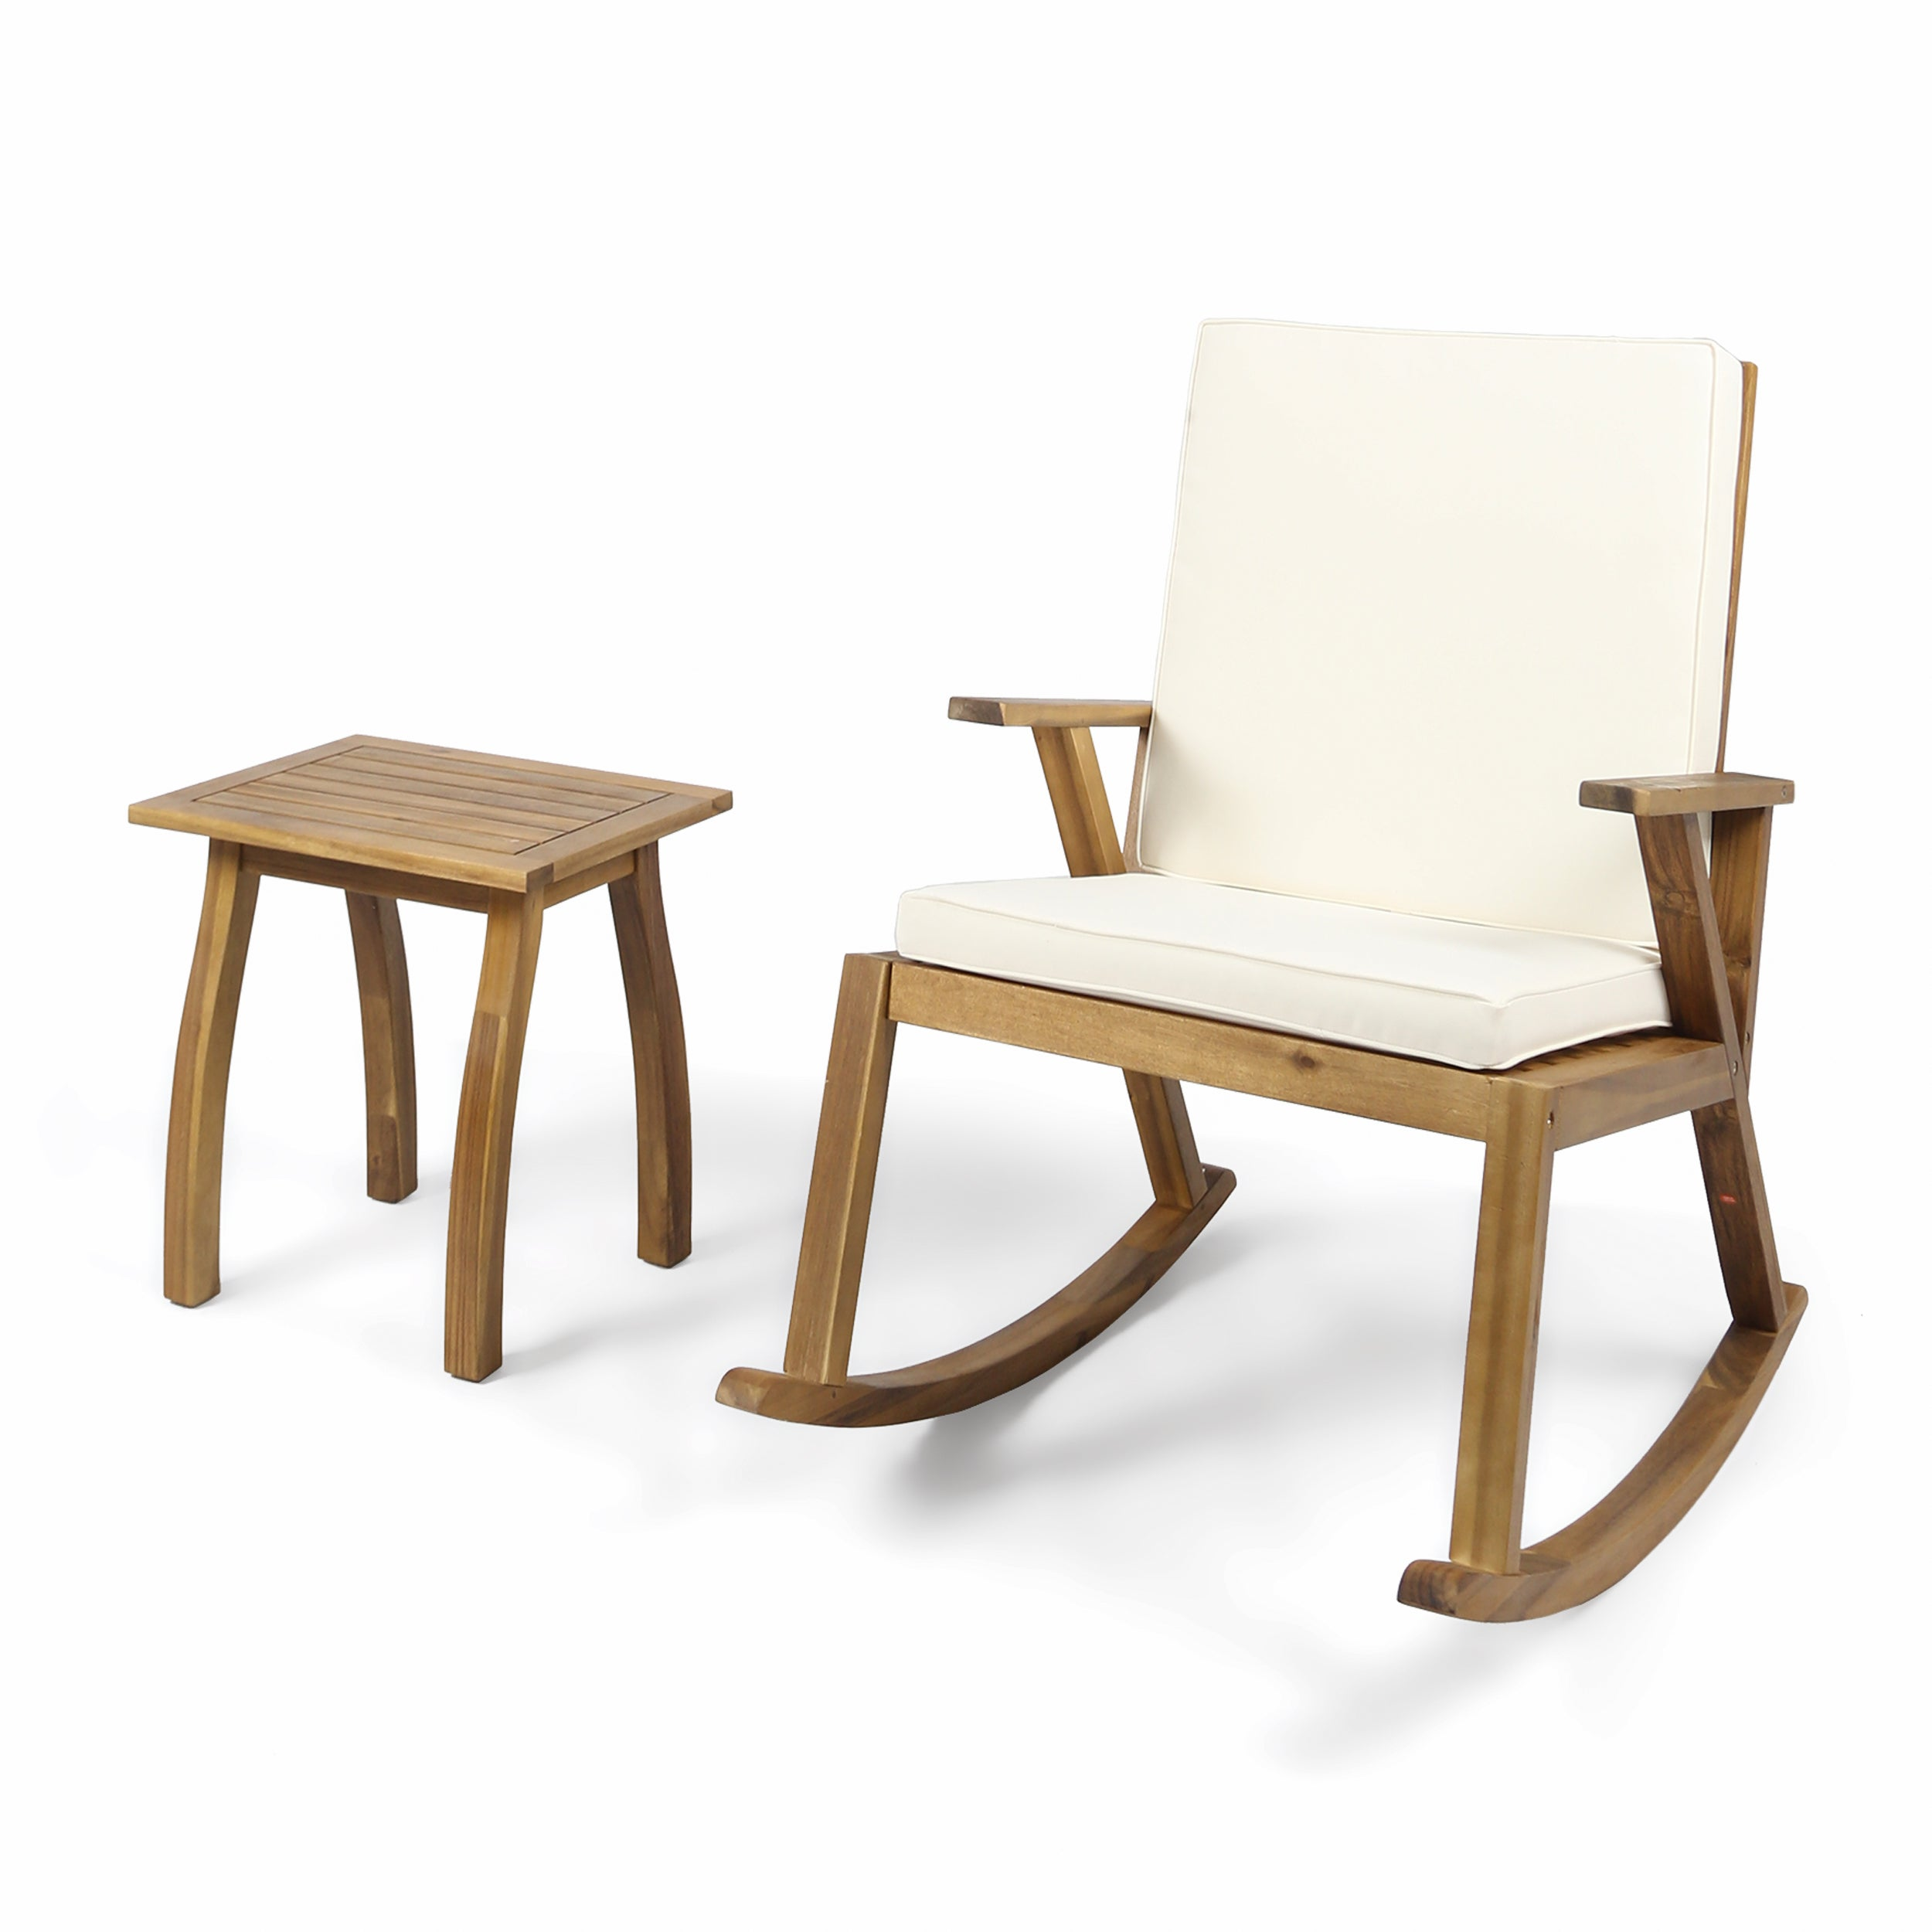 Alize Outdoor Acacia Wood Rocking Chair and Side Table Default Title